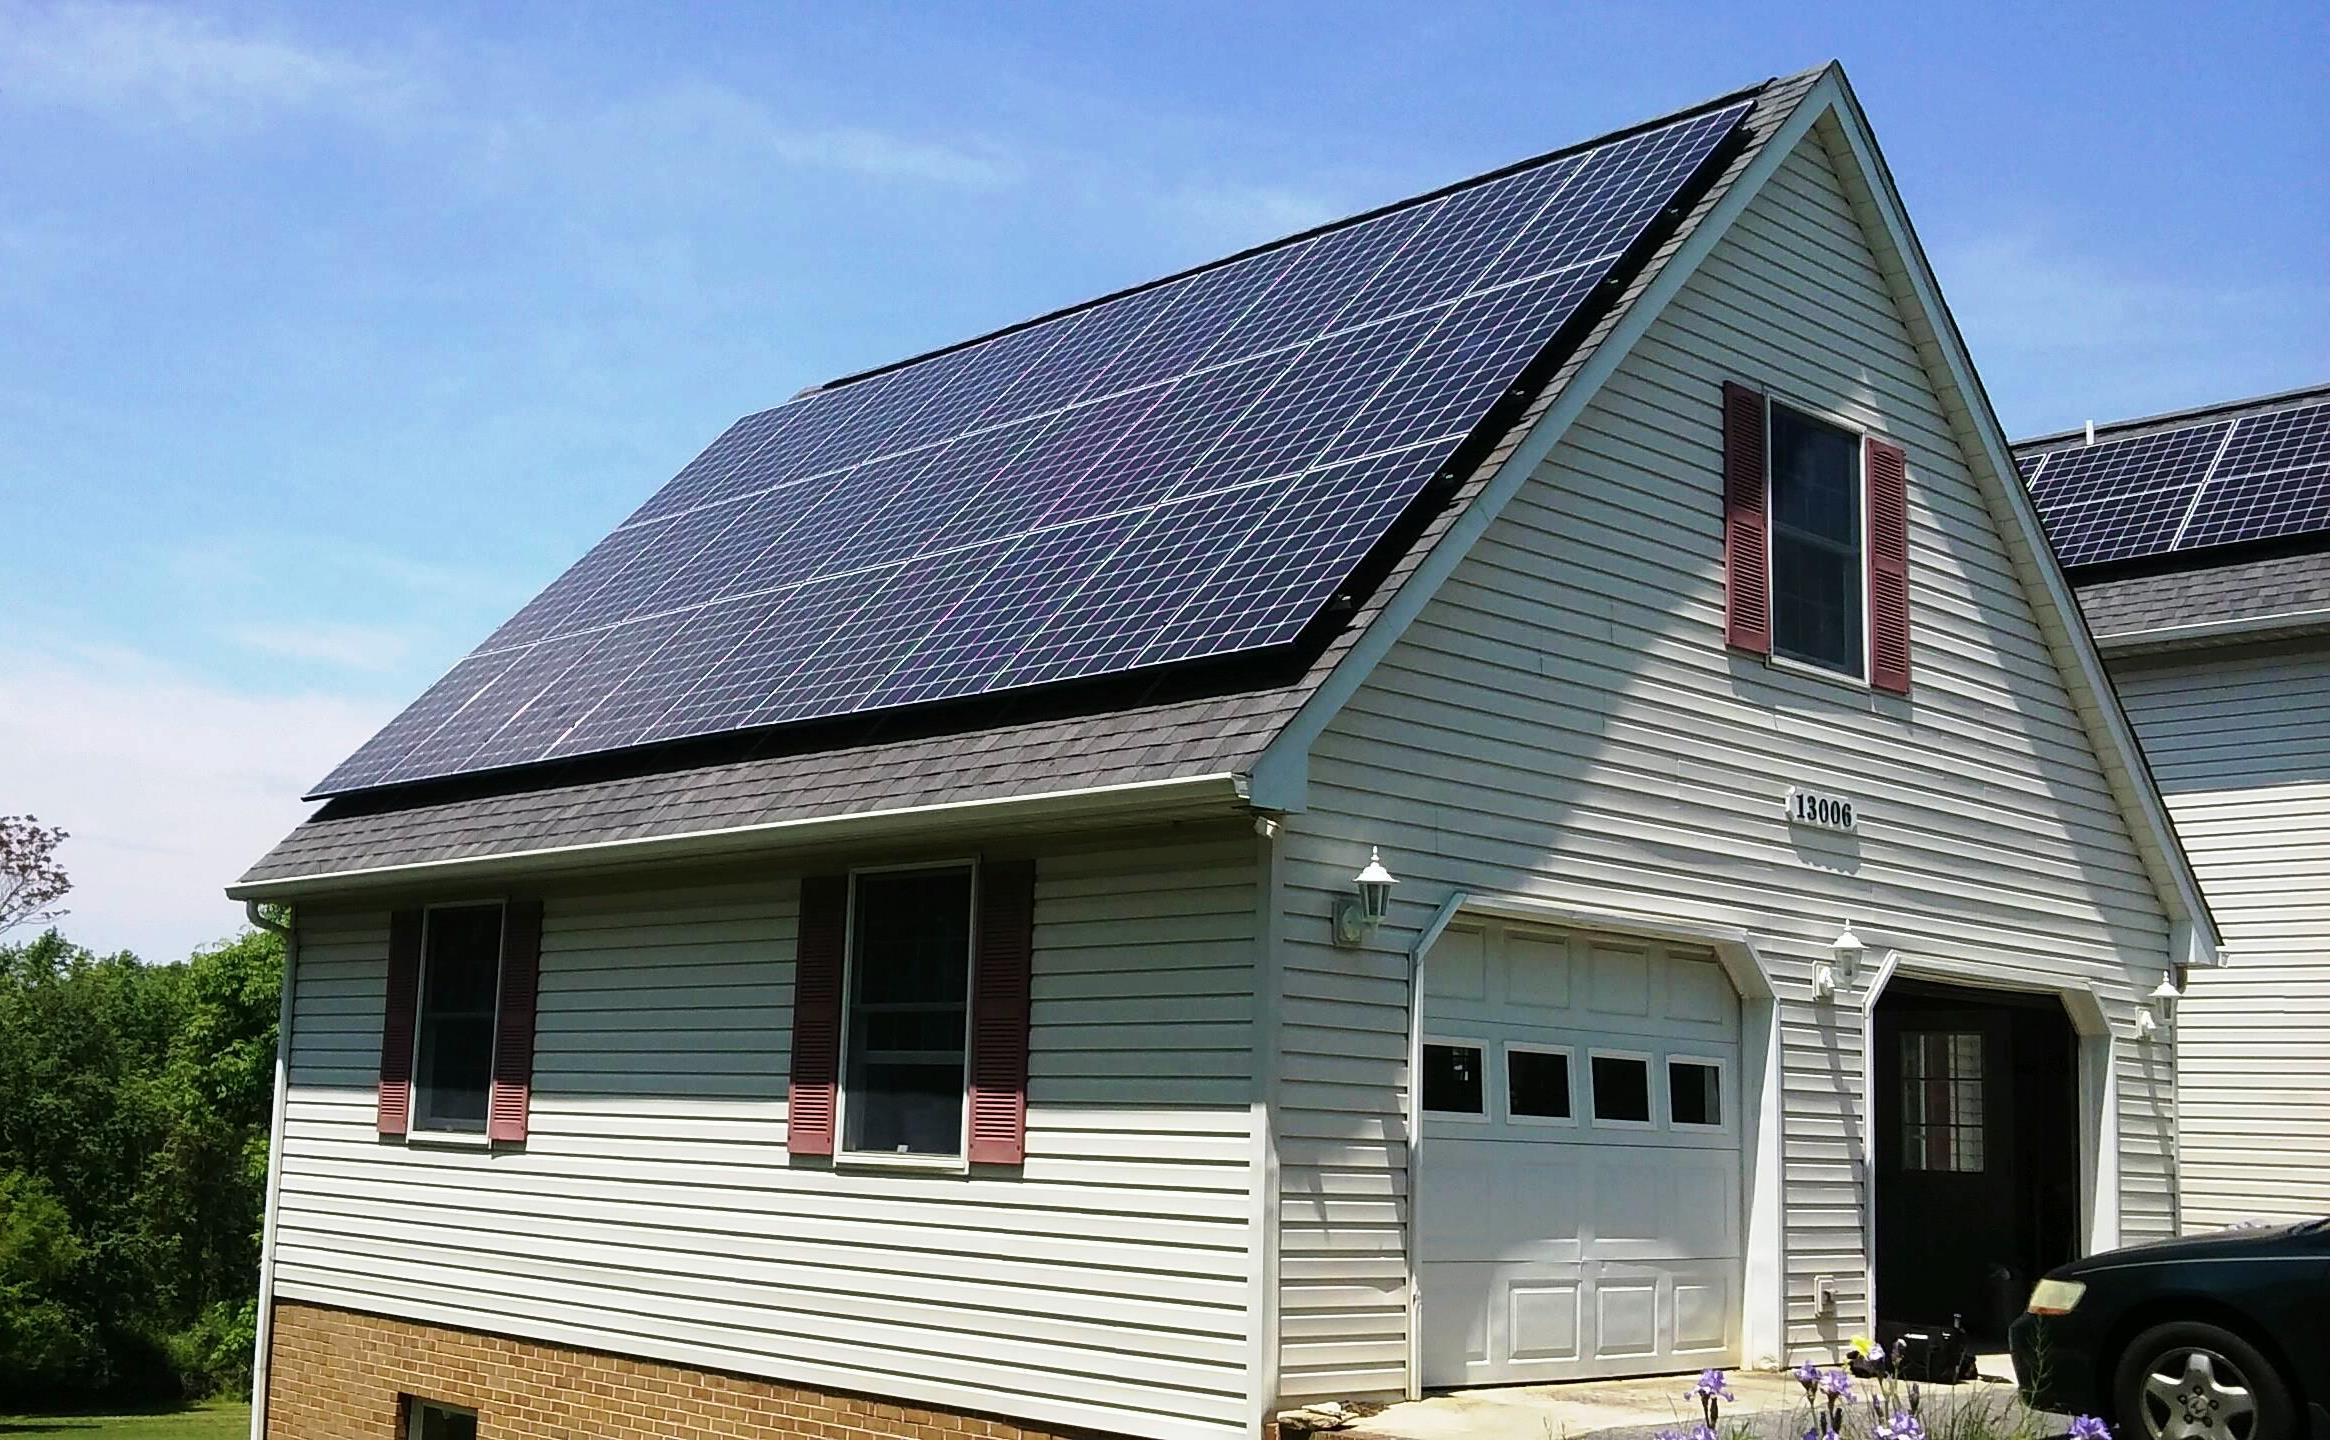 Nice garage array we just finished using the new high efficiency LG 320s!